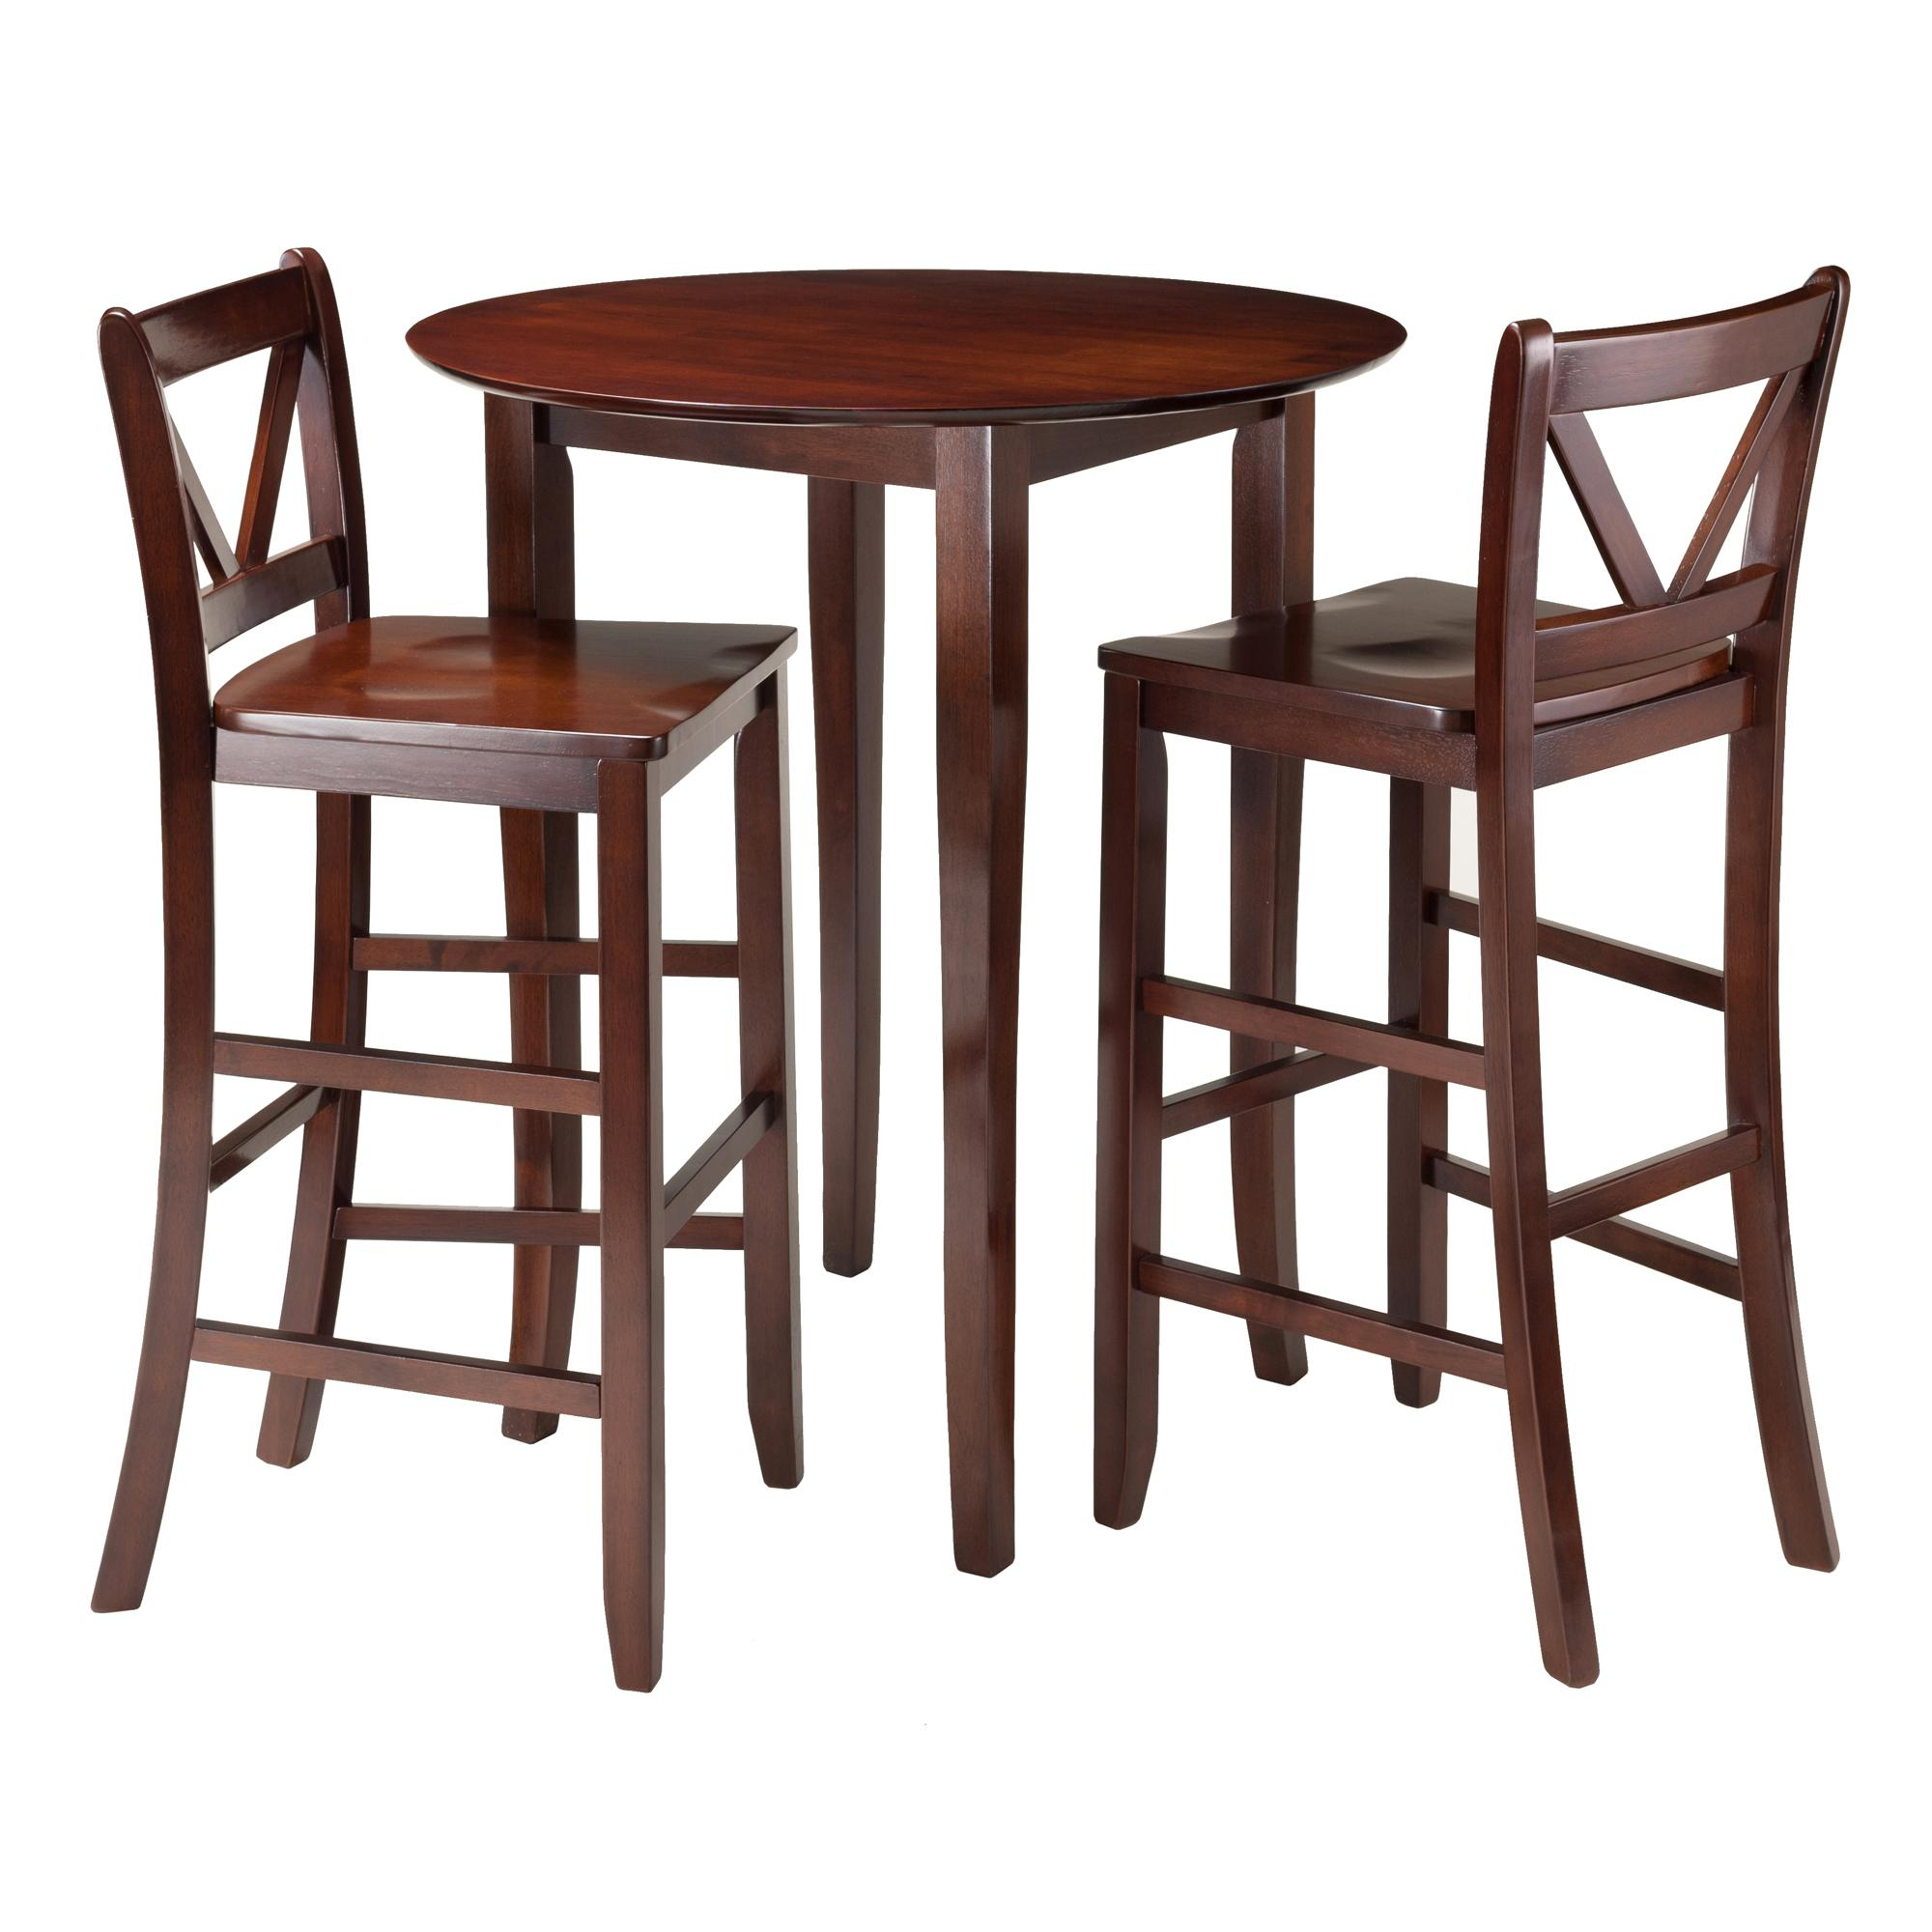 Fiona 3 Pc High Round Table With 2 Bar V Back Stool